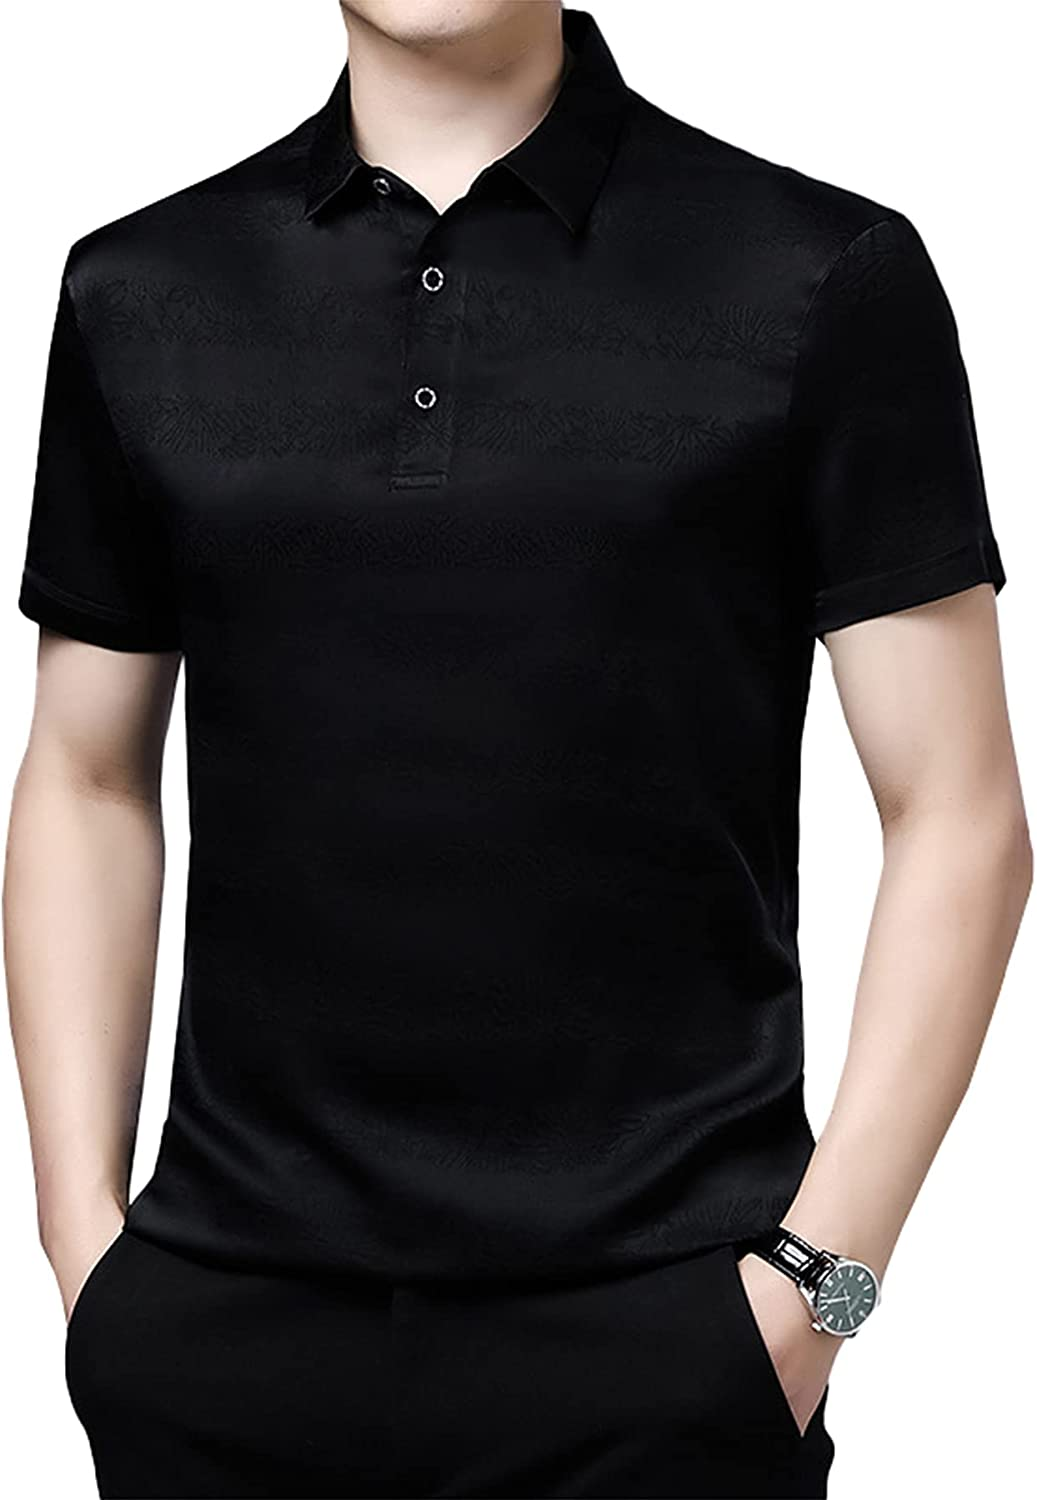 Men's Young And Middle-Aged Business Casual Silk 100% Short-Sleeved T-Shirt Simple Men's Top Tee Button Down Lapel Collar